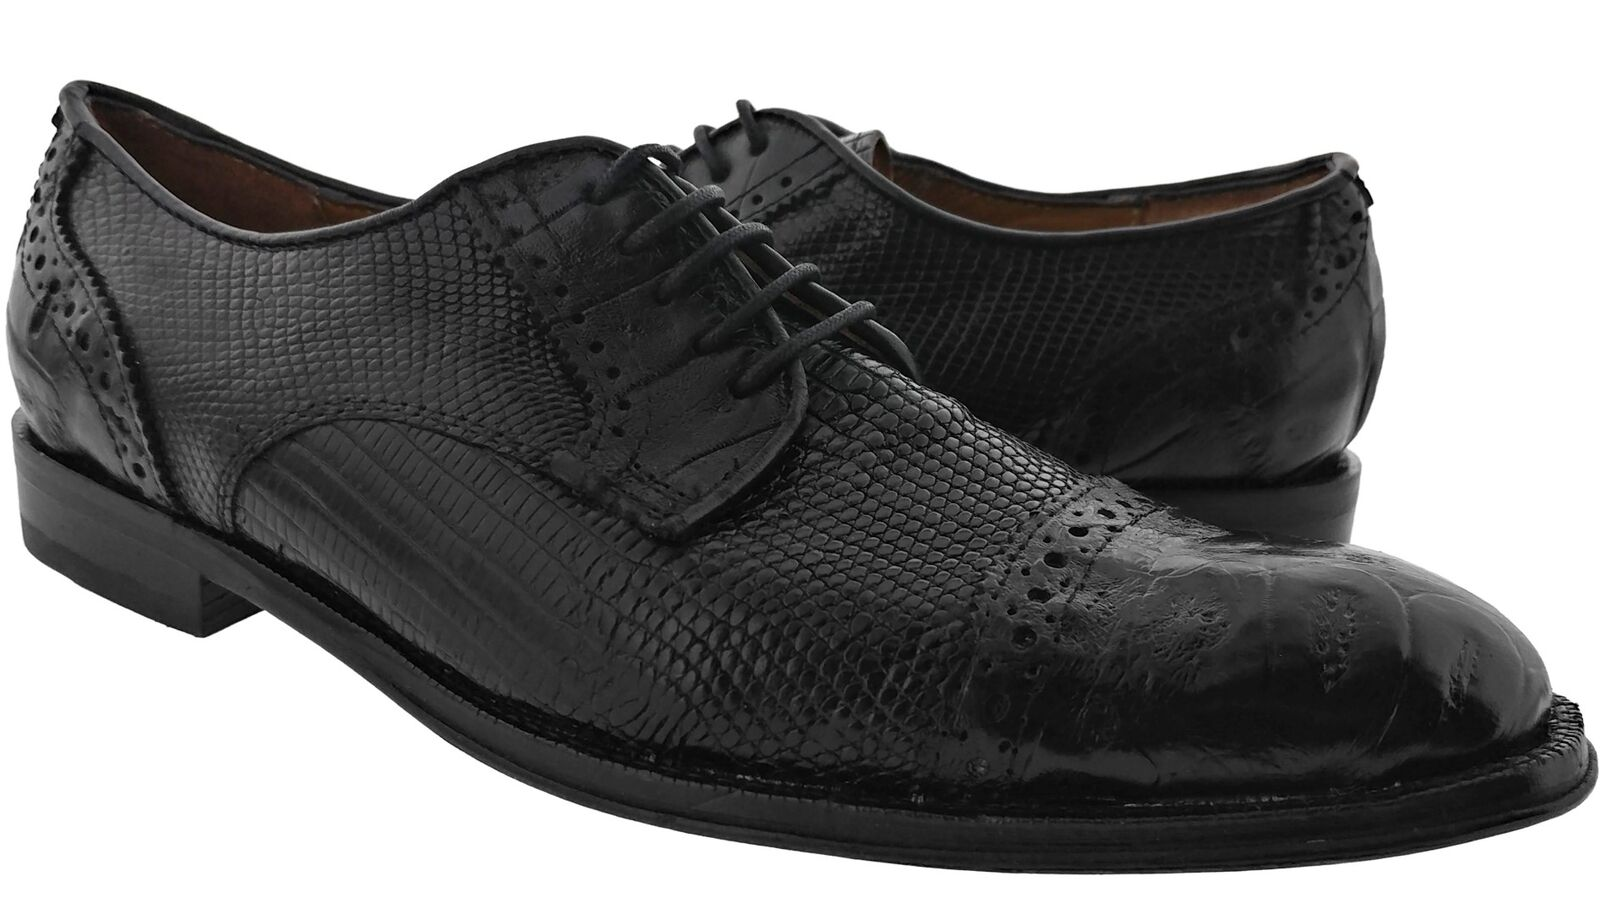 compra meglio Uomo nero Real Lizard Authentic Genuine Crocodile Crocodile Crocodile Skin Dress scarpe  acquisti online